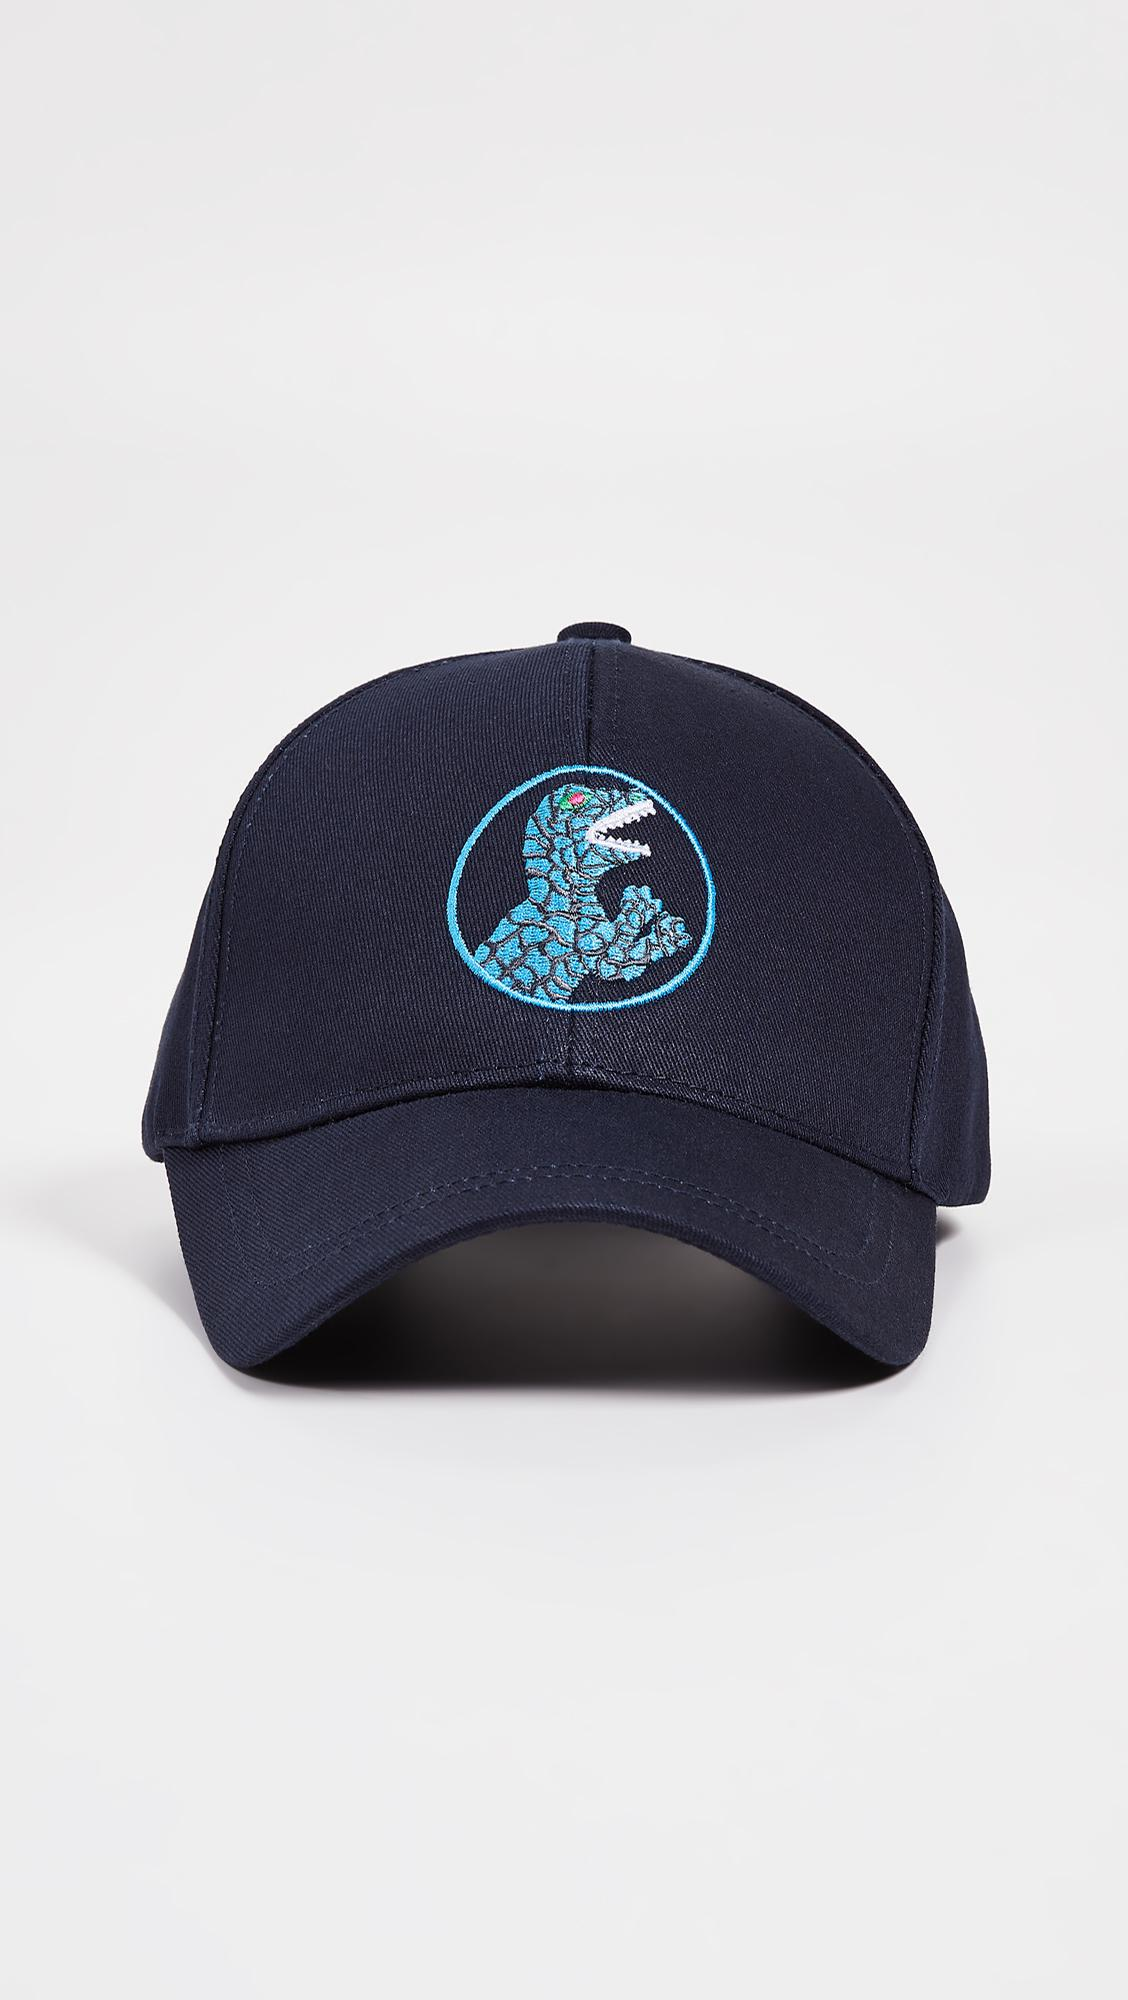 Lyst - Paul Smith Dino Baseball Cap in Blue for Men - Save 33% 319bf442a595